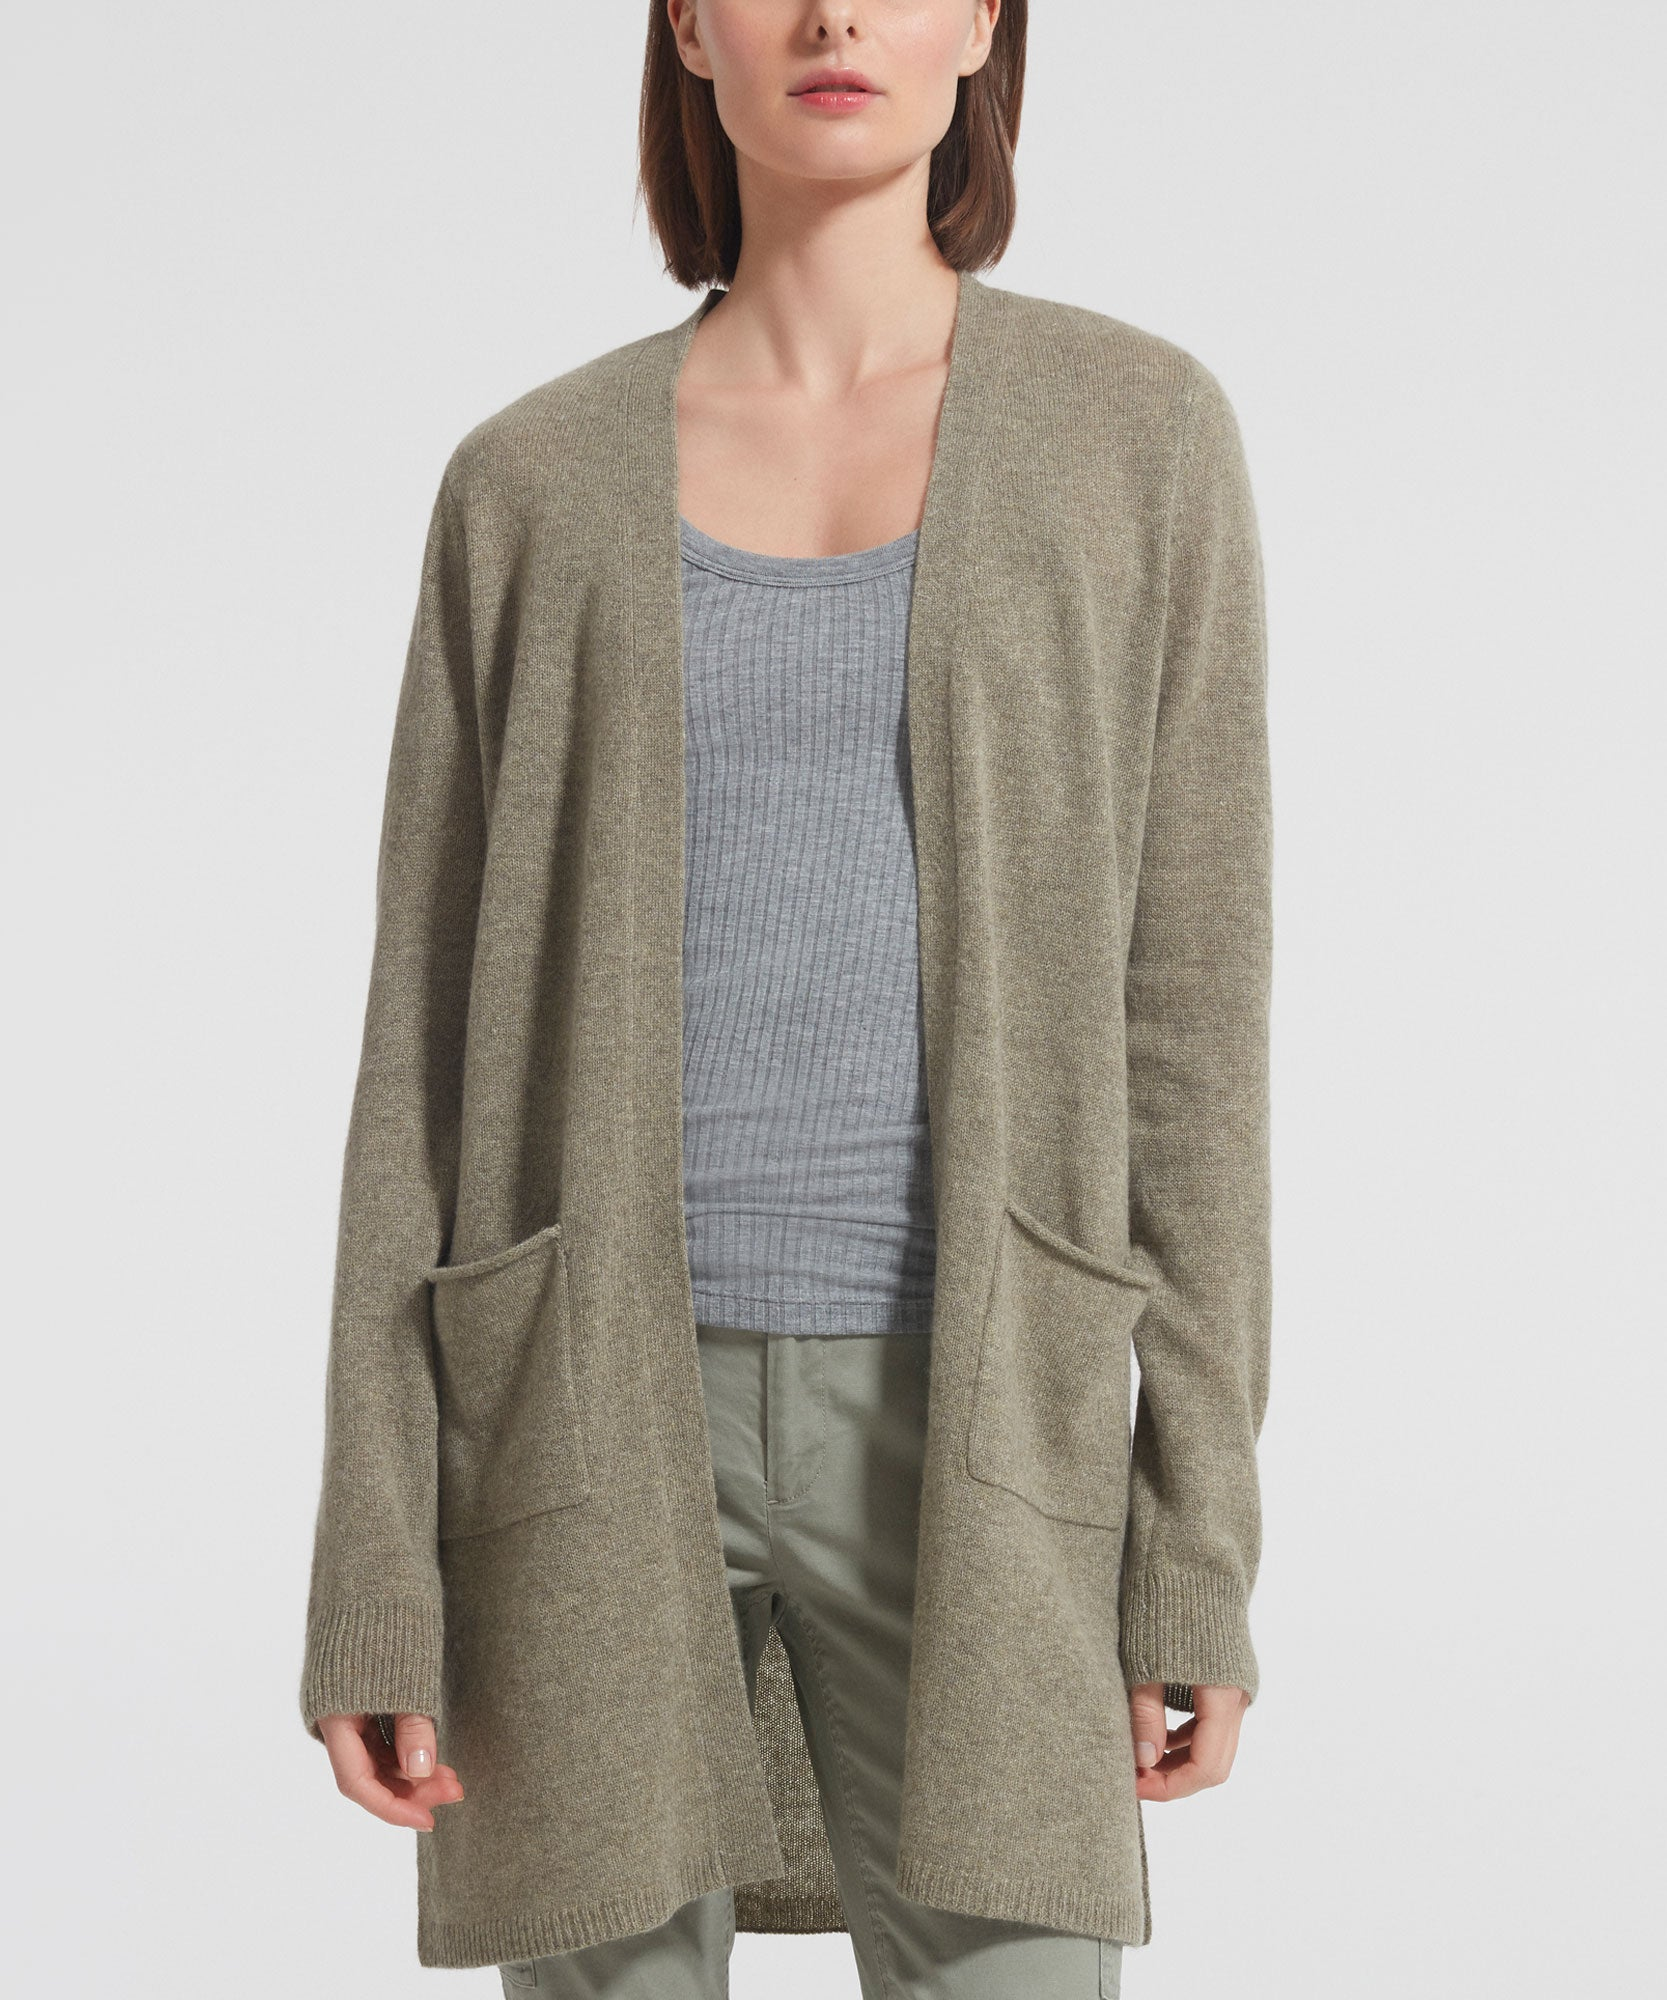 Grass Cashmere Cardigan - Women's Luxe Sweater by ATM Anthony Thomas Melillo